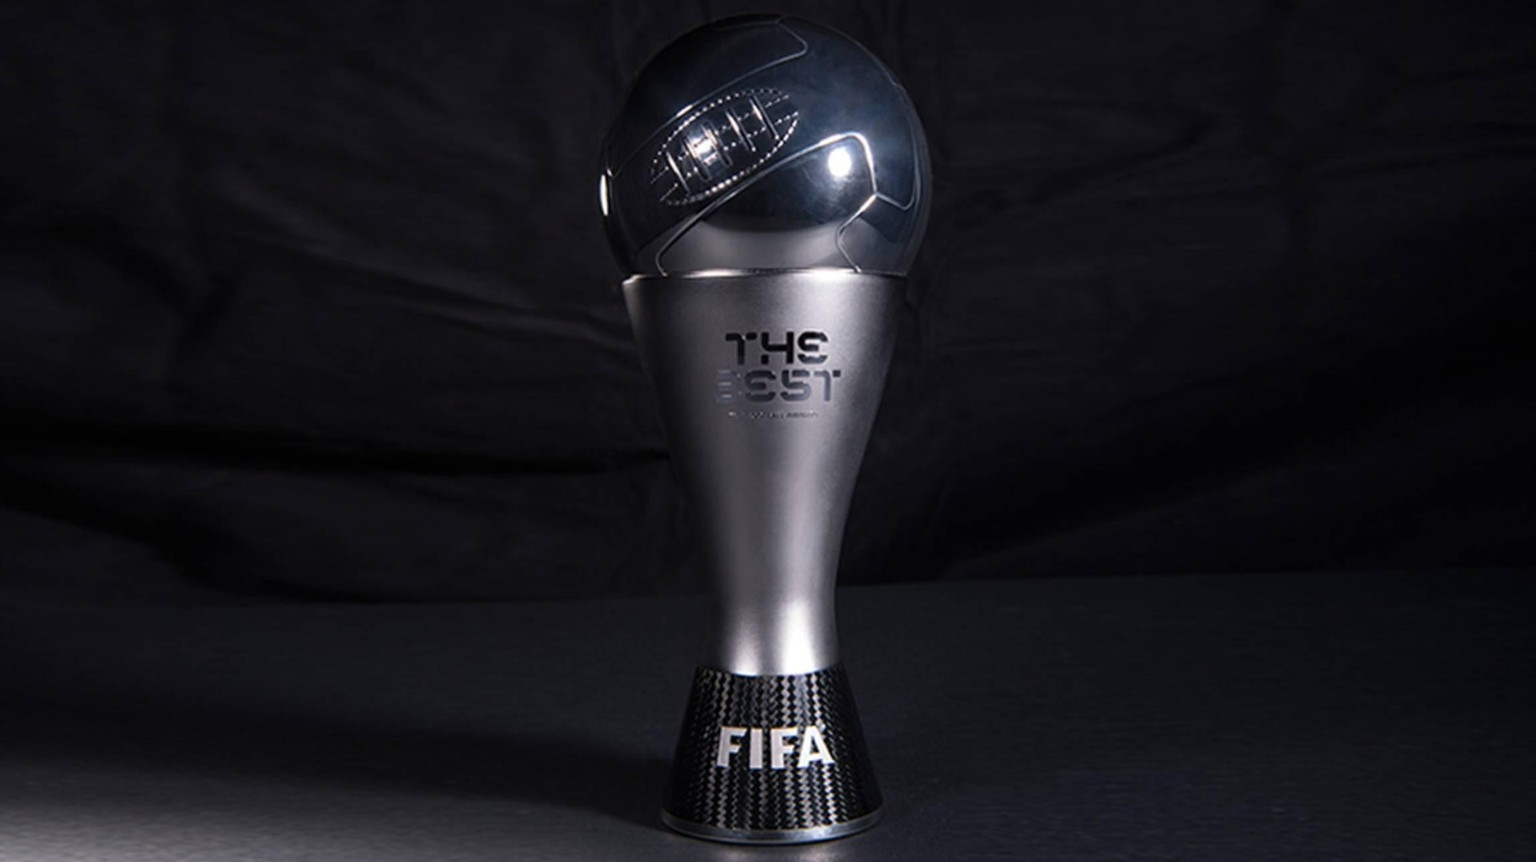 Fussball International FIFA The Best Football Awards 2016 06.01.2017 Neue Trophaee, Trophy PUBLICATIONxNOTxINxAUTxSUIxITA